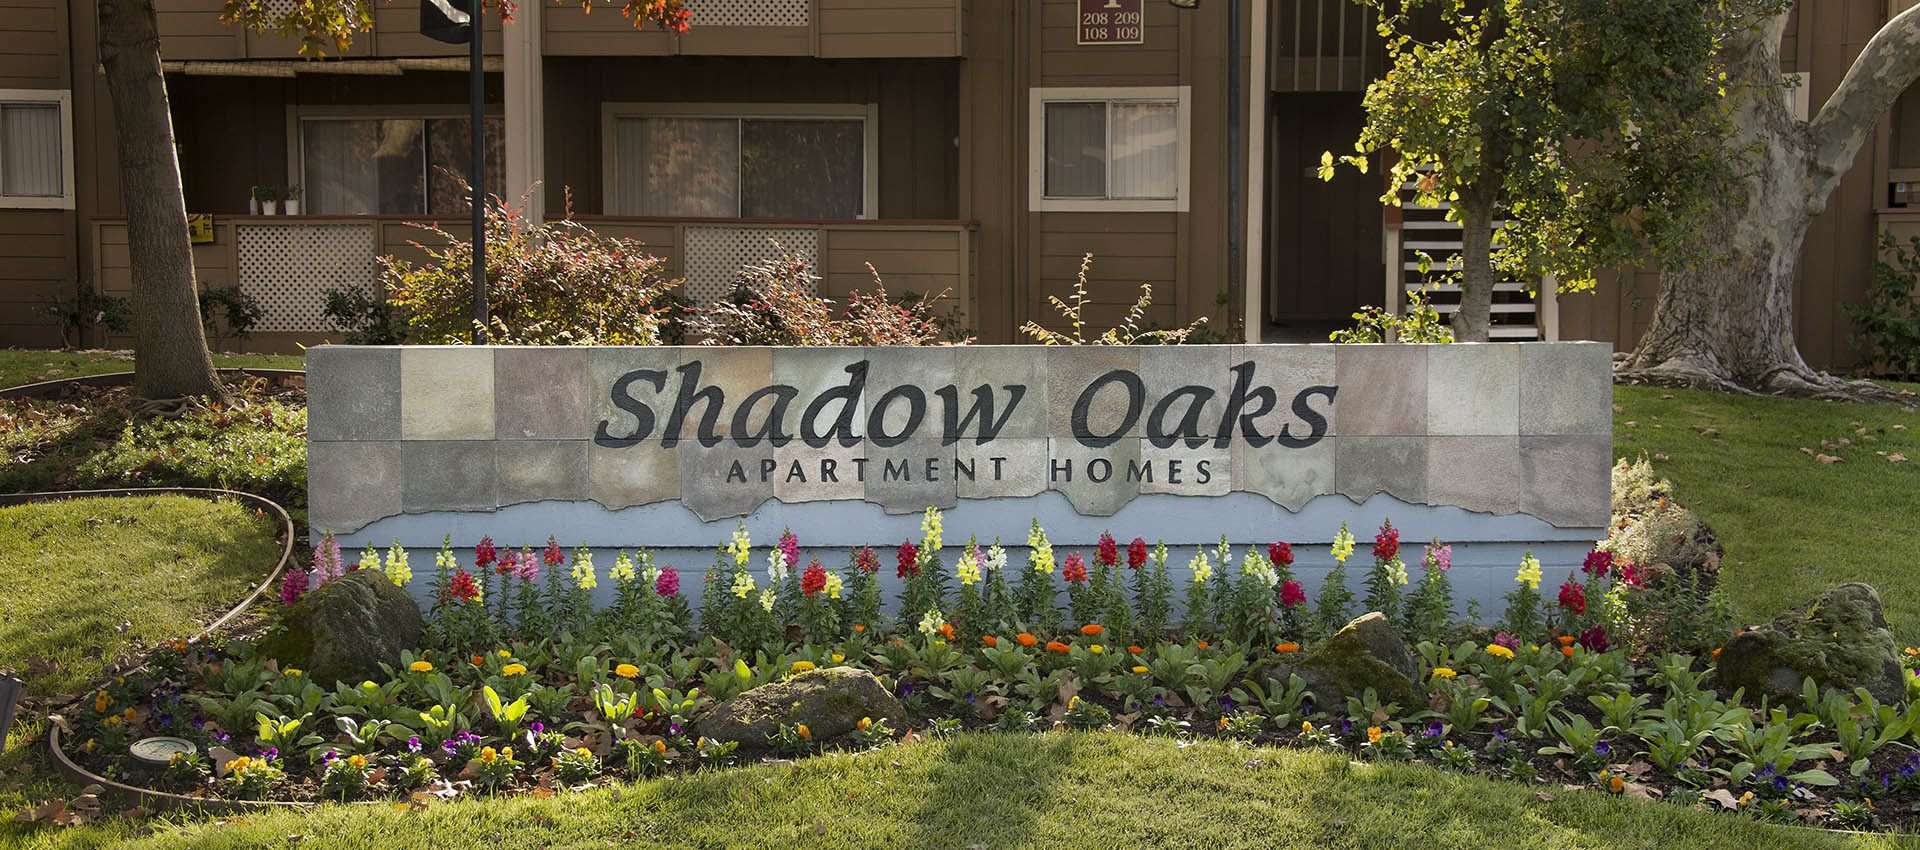 Signage at Shadow Oaks Apartment Homes in Cupertino